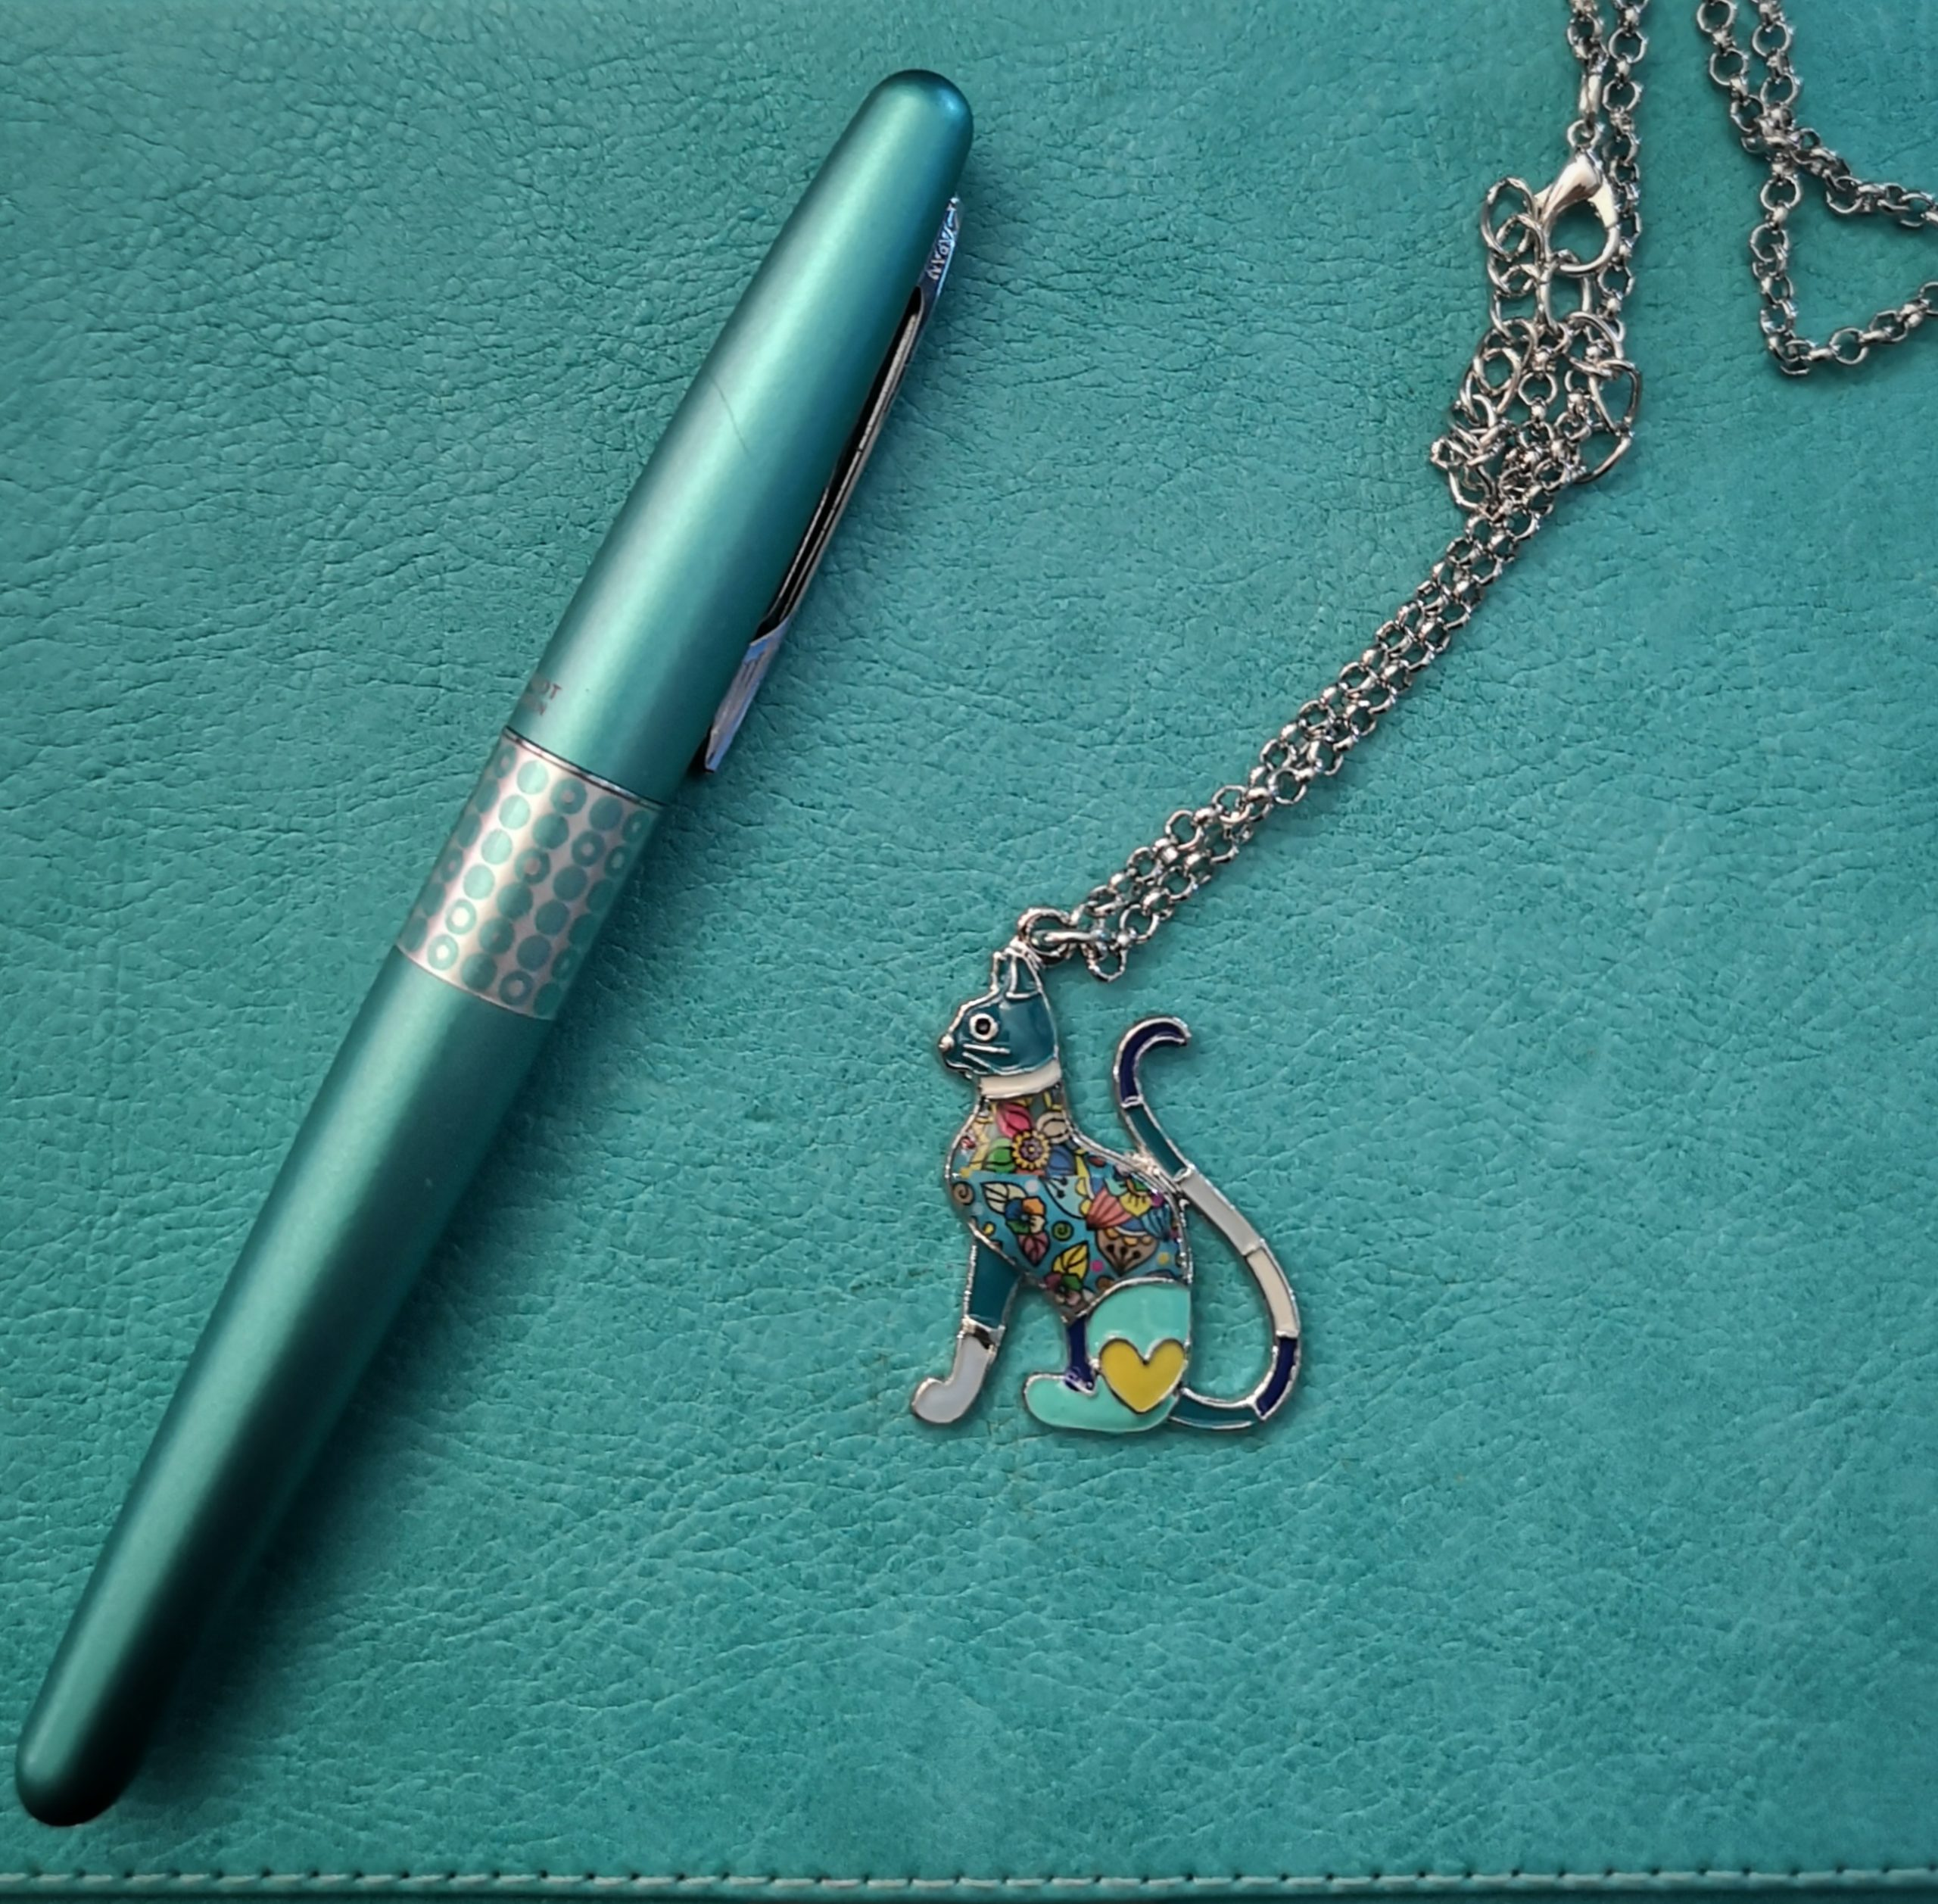 Teal color binded book with teal color ink pen and teal accent cat pendant necklace.